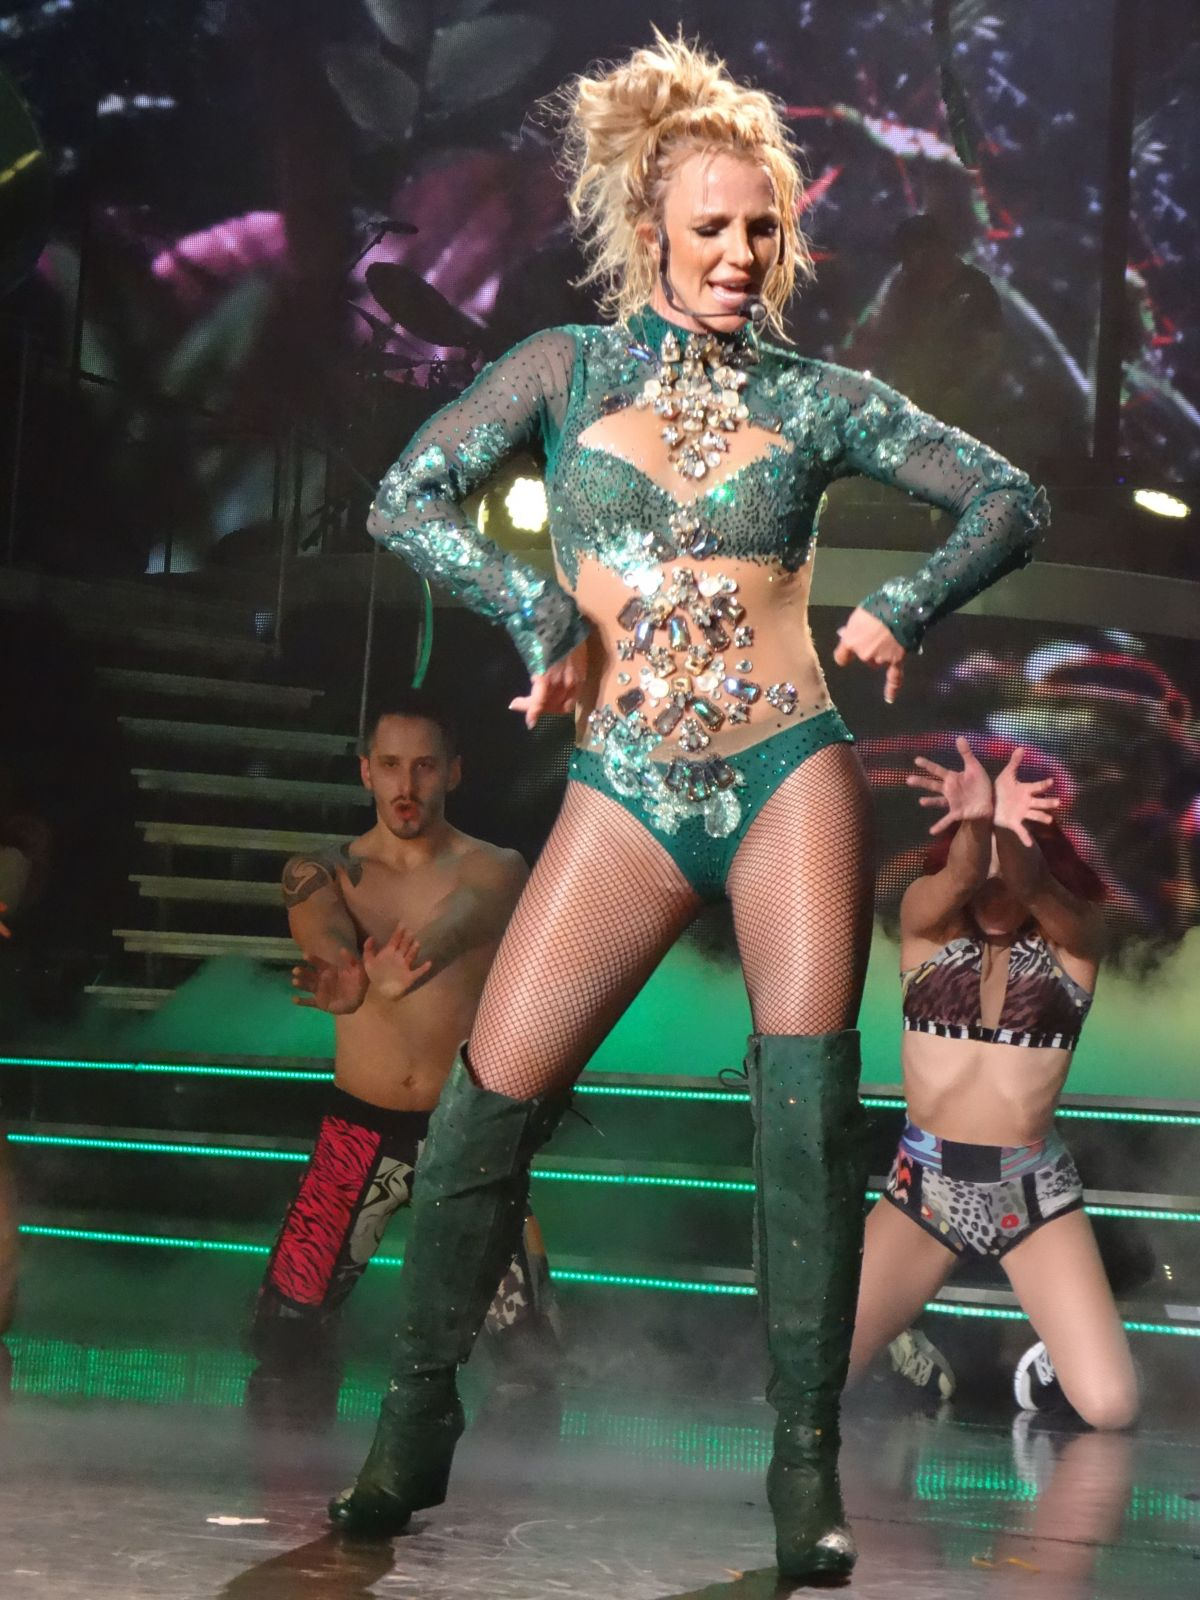 britney-spears-performs-at-her-show-in-l